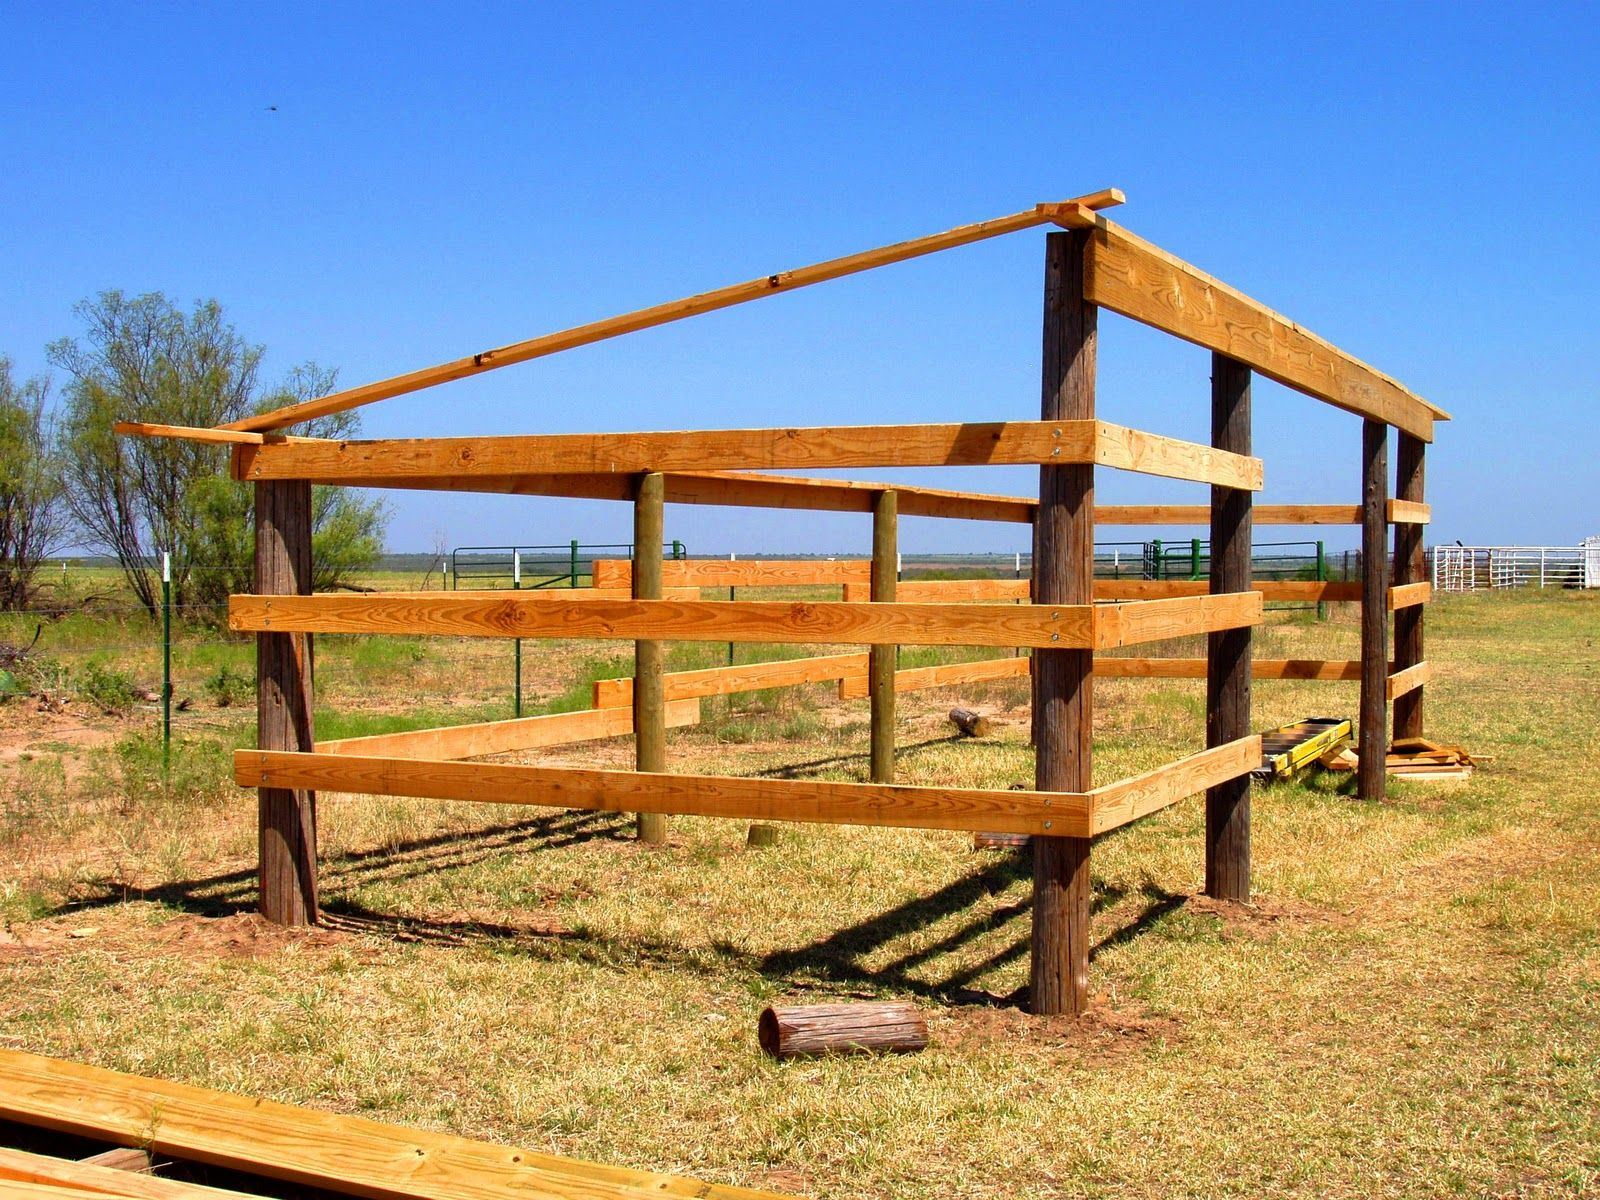 Wooden horse swing free patterns - 25 Best Horse Shed Ideas On Pinterest Horse Shelter Run In Shed And Saddlery Barn